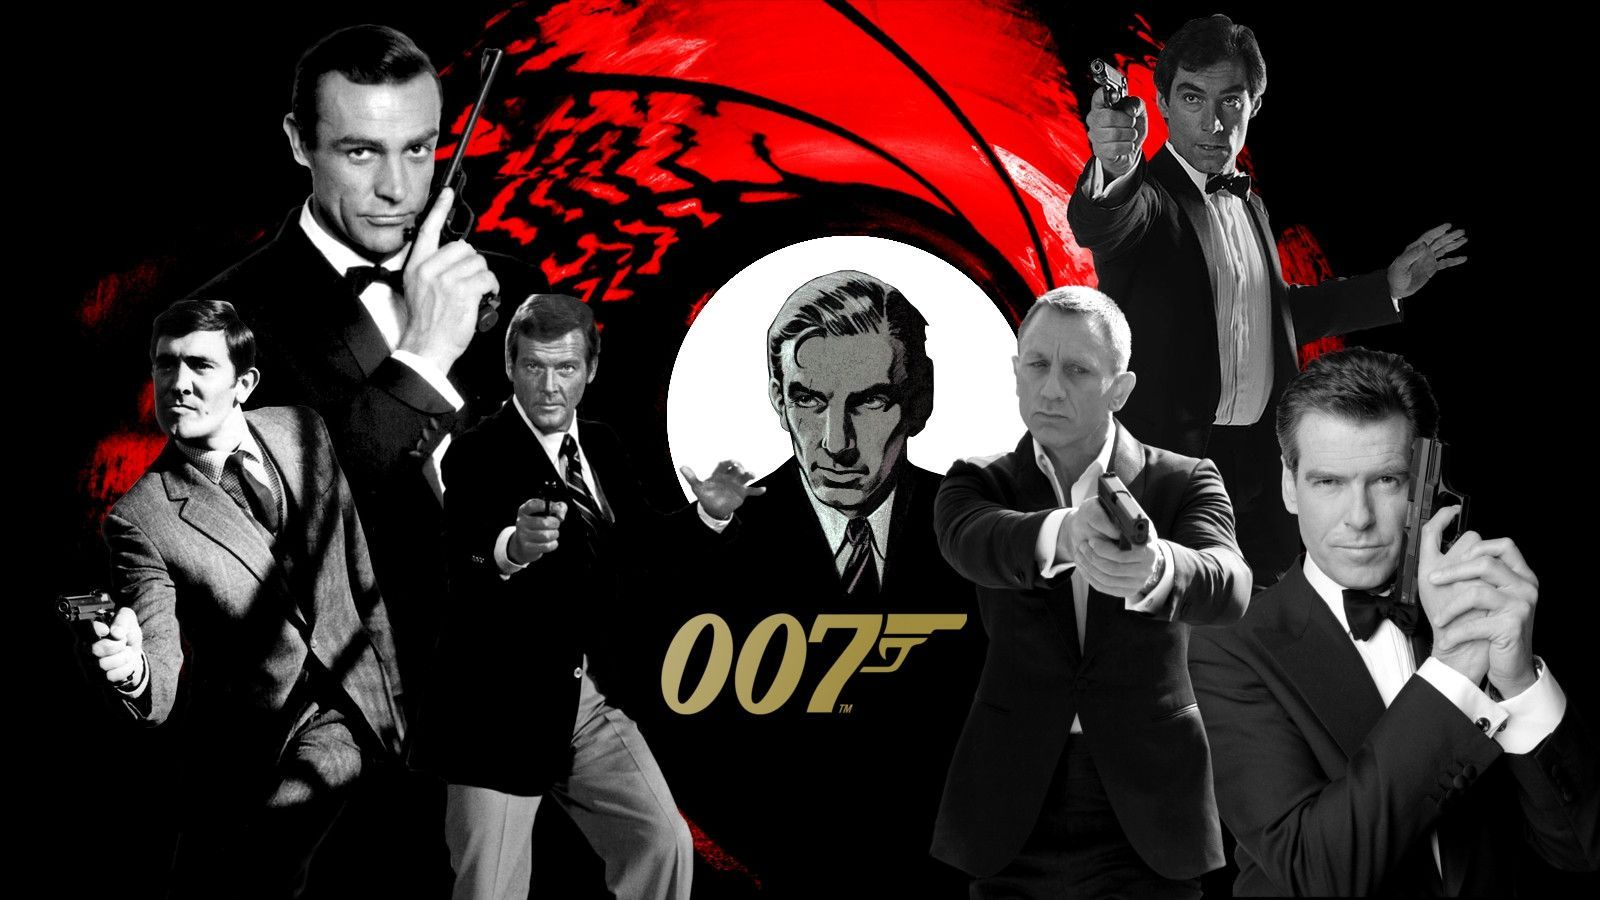 007 Wallpapers High Quality